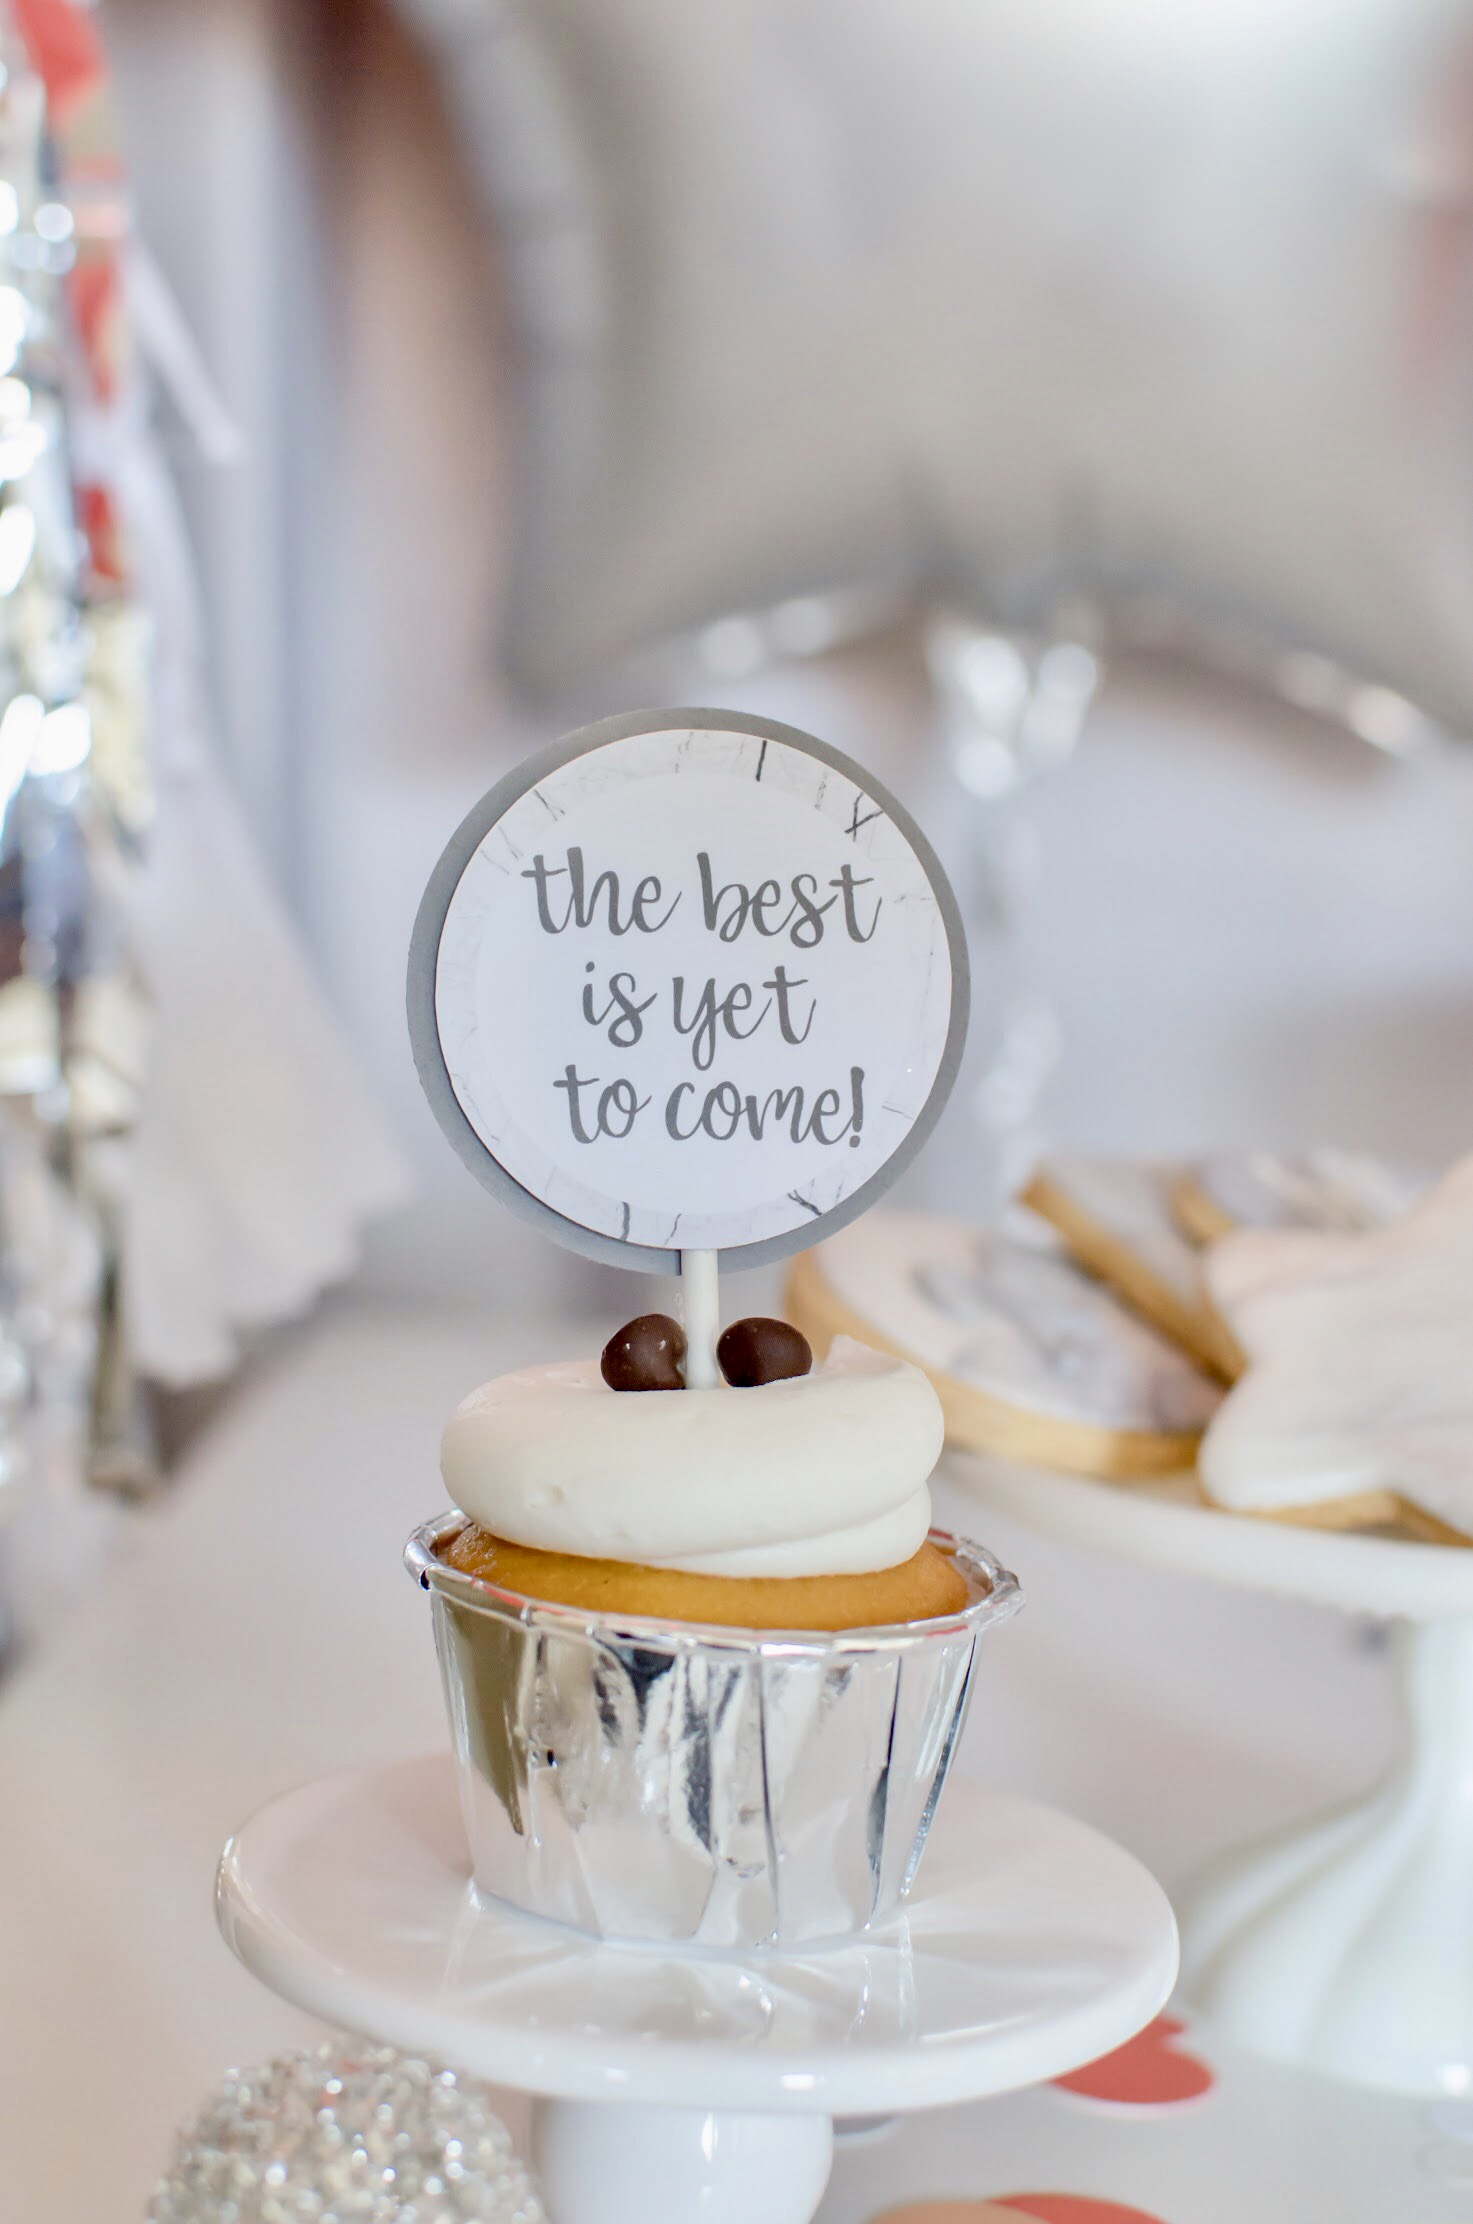 The best is yet to come! Cute cupcake toppers for NYE!